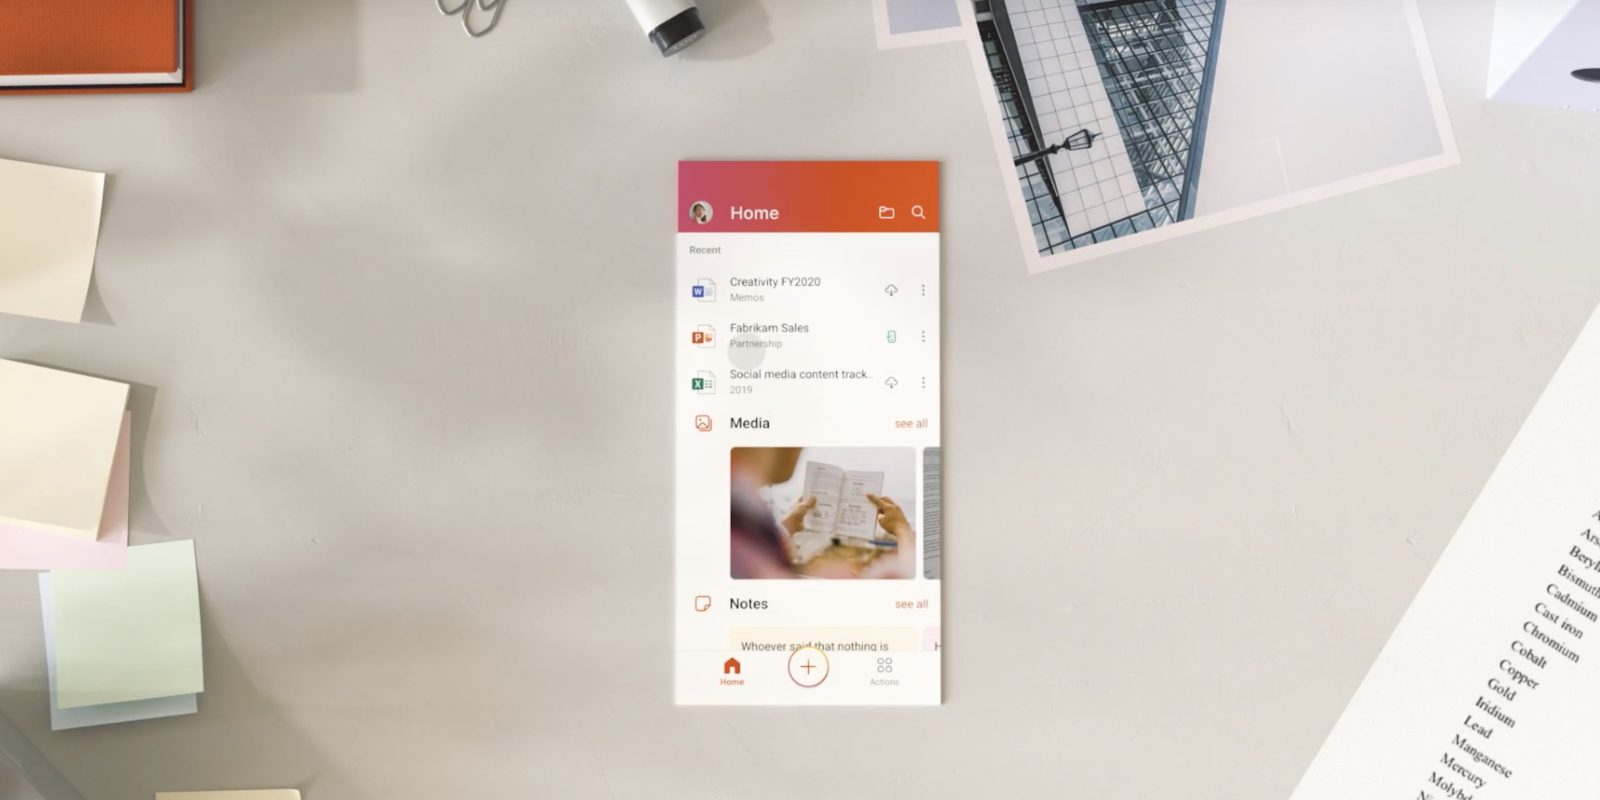 Microsoft launches beta for new Office iOS app, includes Word, Excel, PowerPoint